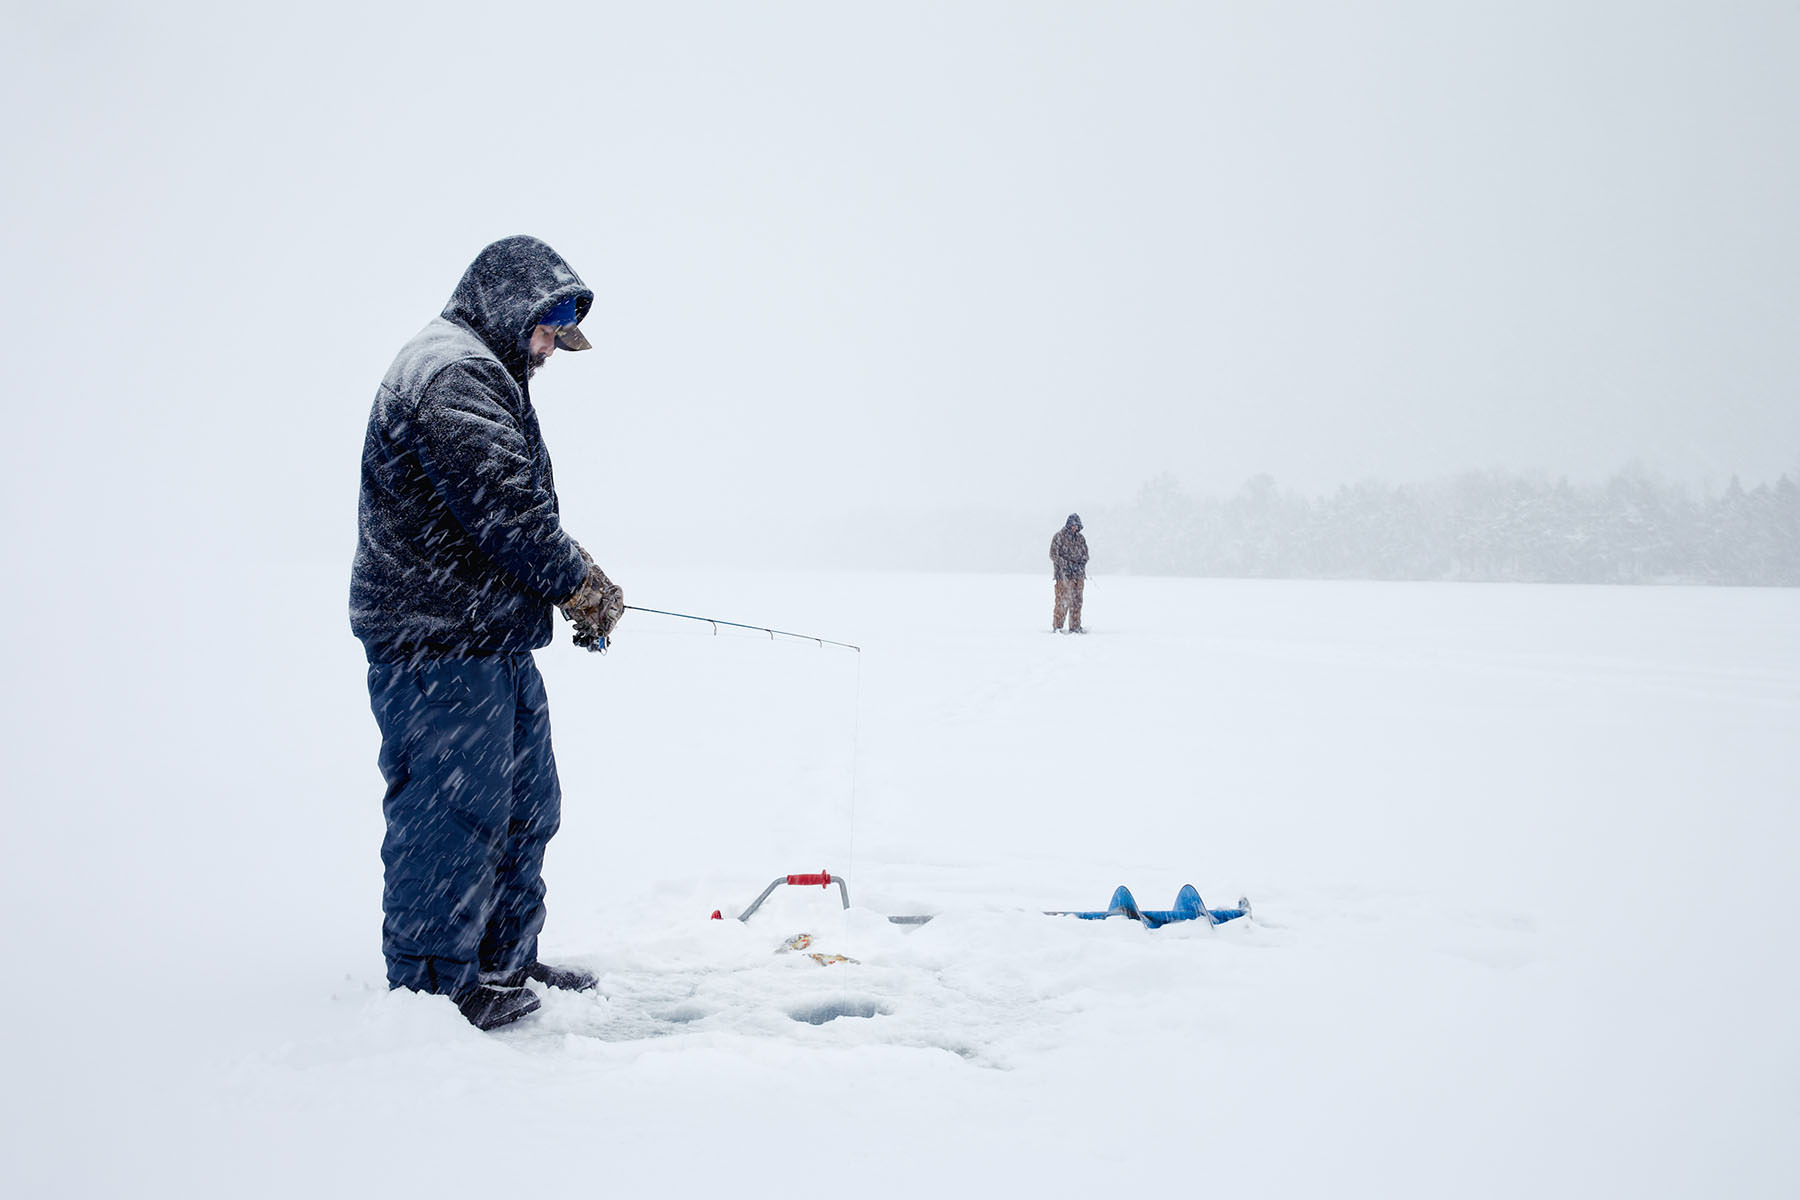 Ice fishing series taken in Smith Falls Ontario. Matthew Liteplo is an avid outdoorsmen and loves using is professional photography skills to capture interesting images that most people who live in cities don